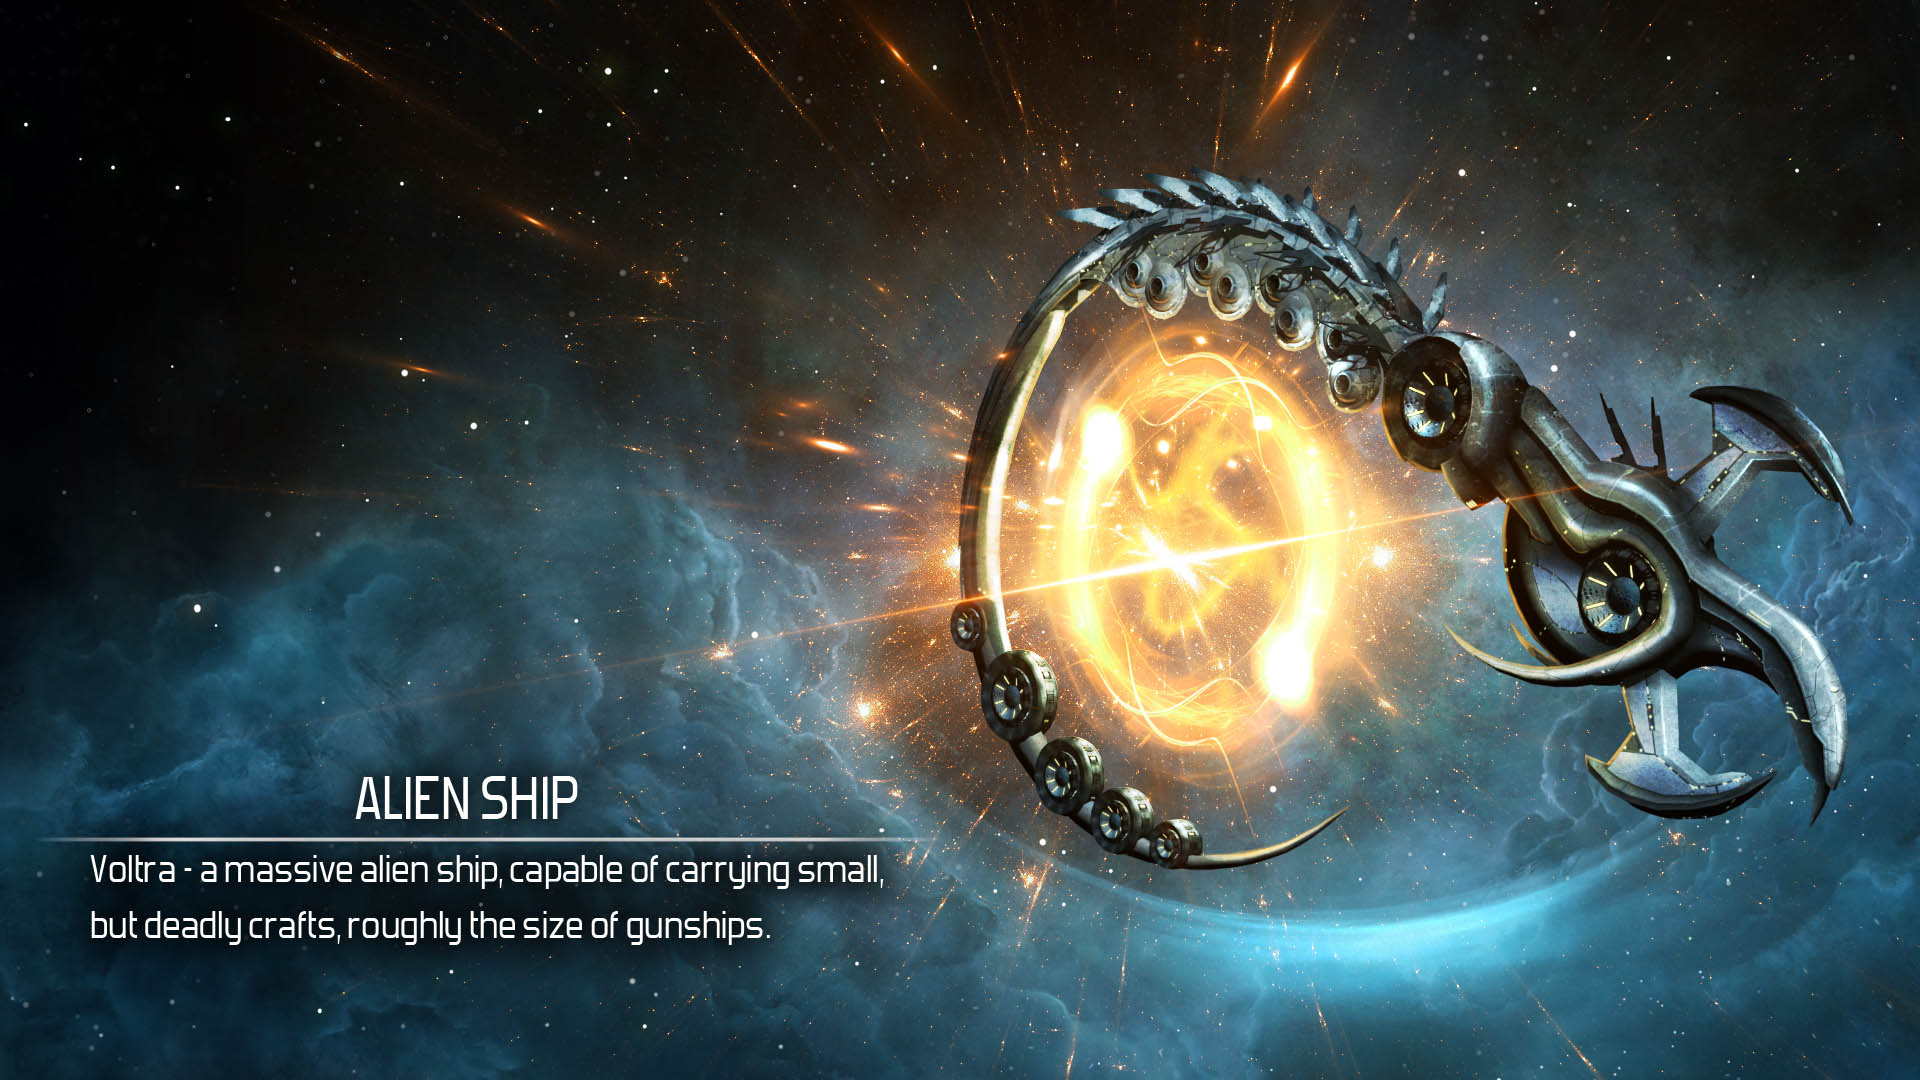 Steam card exchange showcase starpoint gemini 2 card 1 of 8artwork alien ship malvernweather Image collections